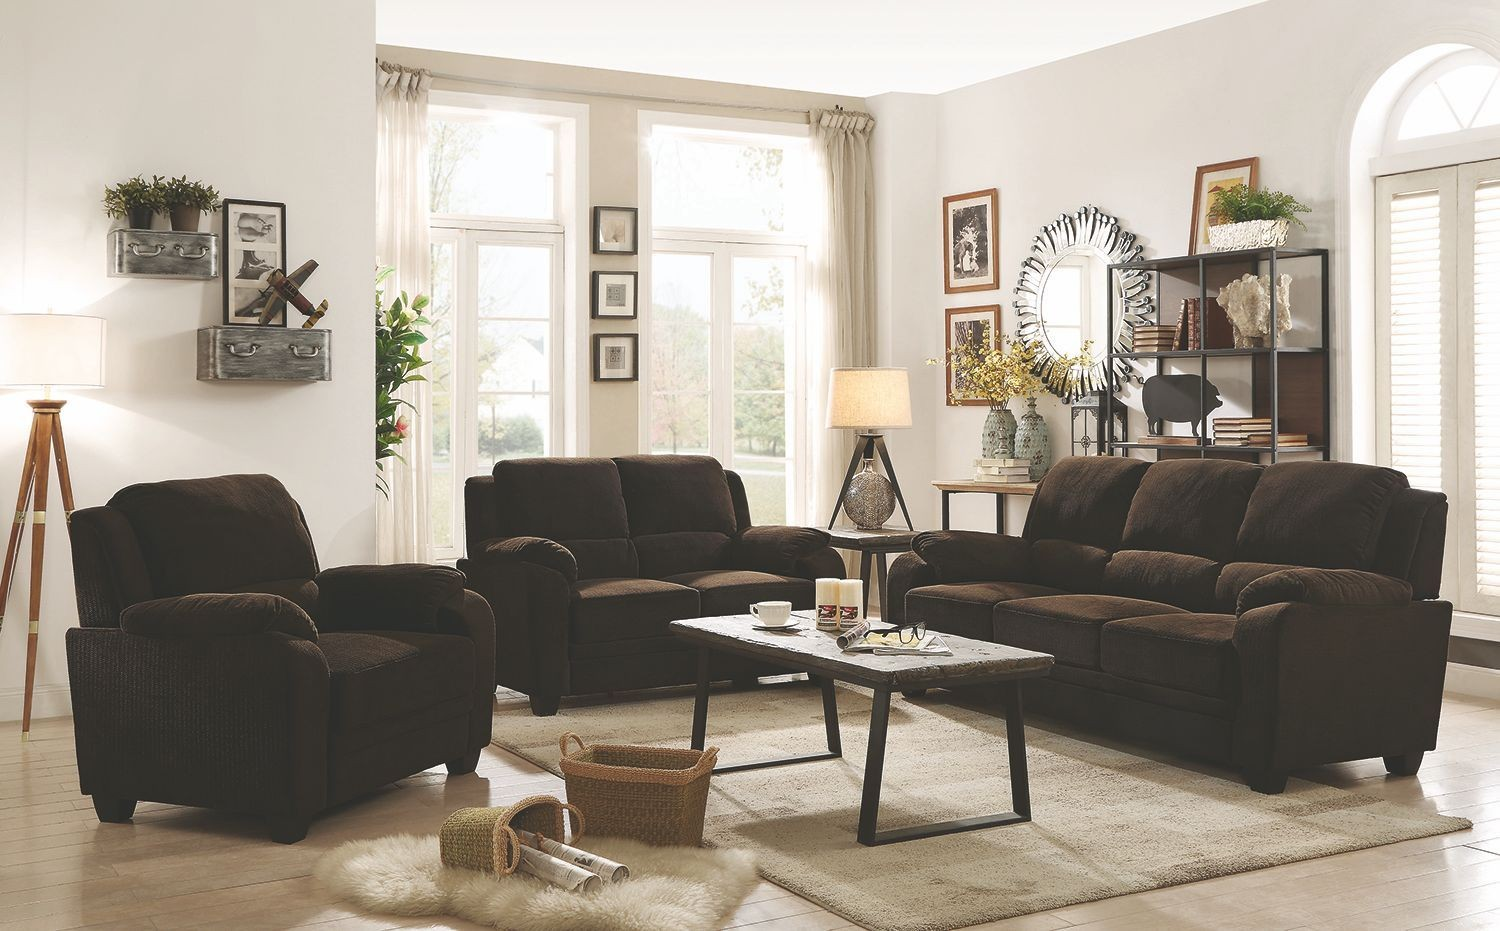 Northend chocolate living room set 506244 45 coaster for Living room north end